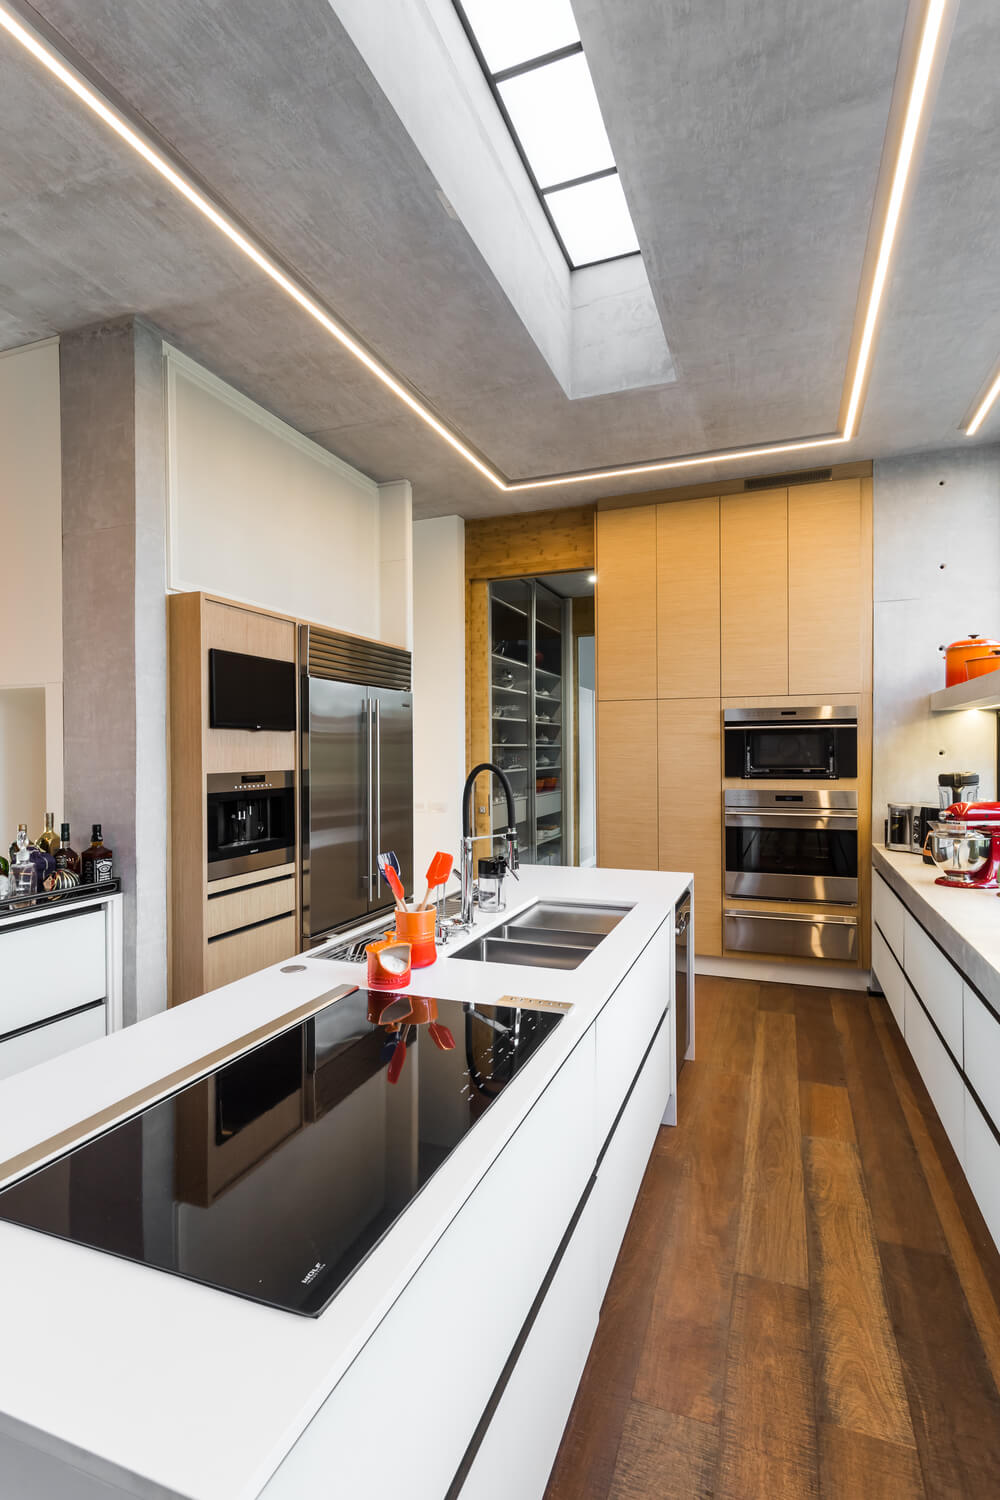 The natural light pairs well with the white kitchen island with modern cabinetry.